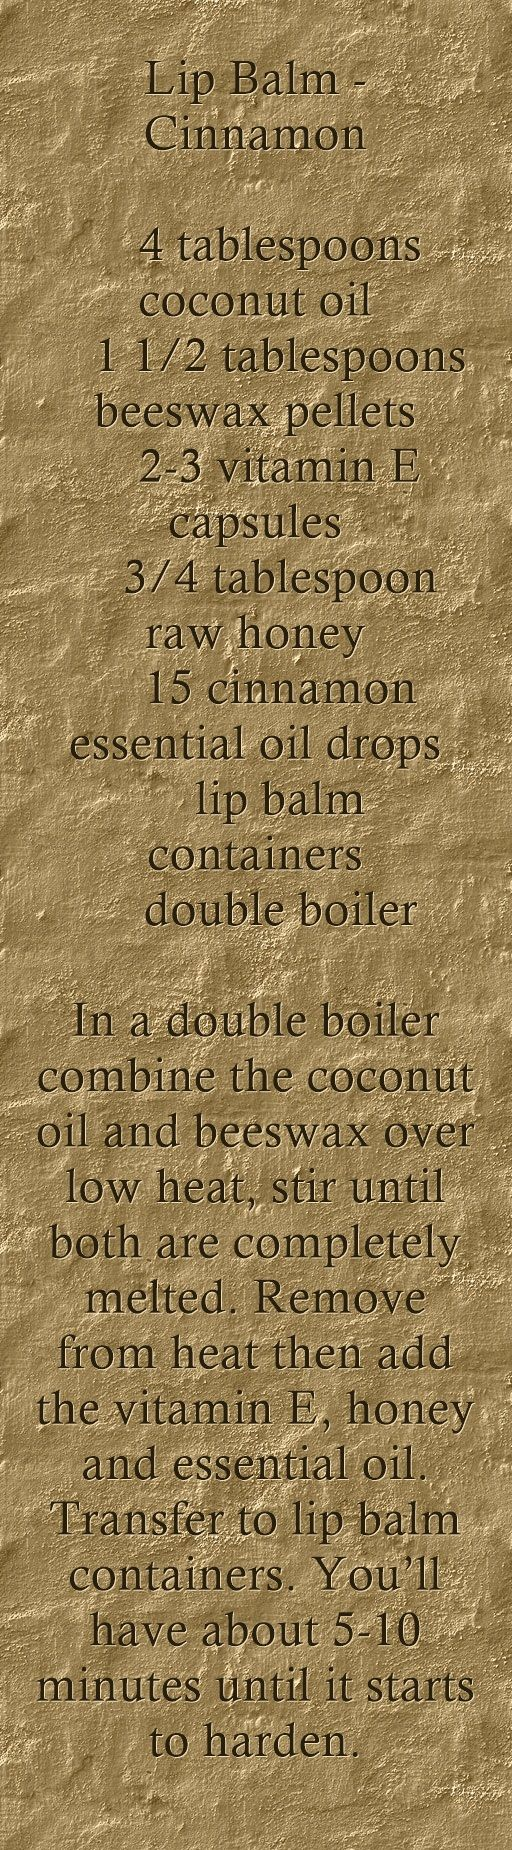 Lip Balm -Cinnamon   4 tablespoons coconut oil   1 1/2 tablespoons beeswax pellets   2-3 vitamin E capsules   3/4 tablespoon raw honey   15 cinnamon essential oil drops   lip balm containers   double boiler In a double boiler combine the coconut oil and beeswax over low heat, stir until both are completely melted. Remove from heat then add the vitamin E, honey and essential oil. Transfer to lip balm containers. You'll have about 5-10 minutes until it starts...